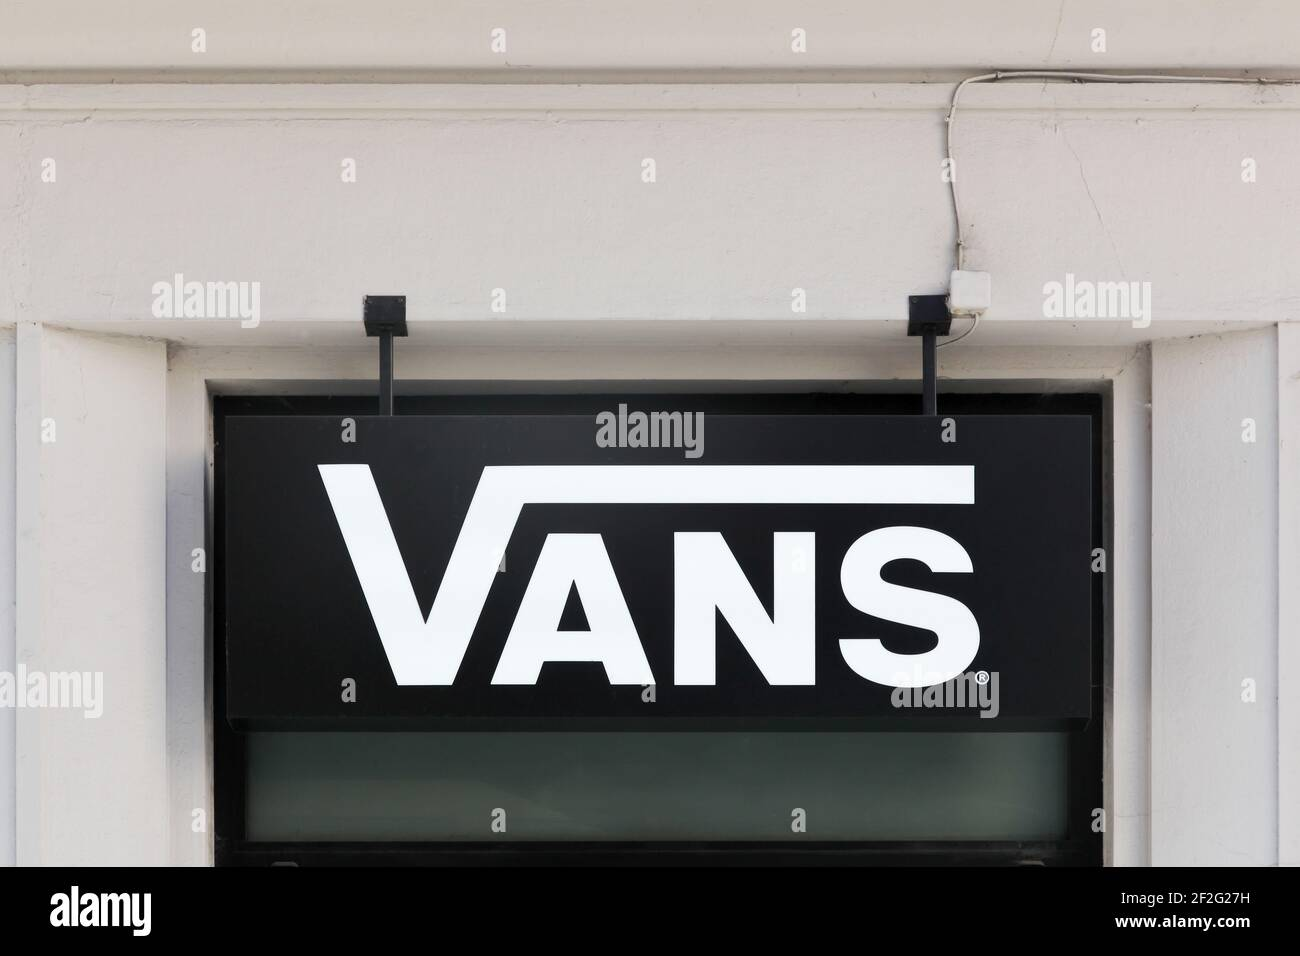 Page 3 - Vans Shoes High Resolution Stock Photography and Images ...